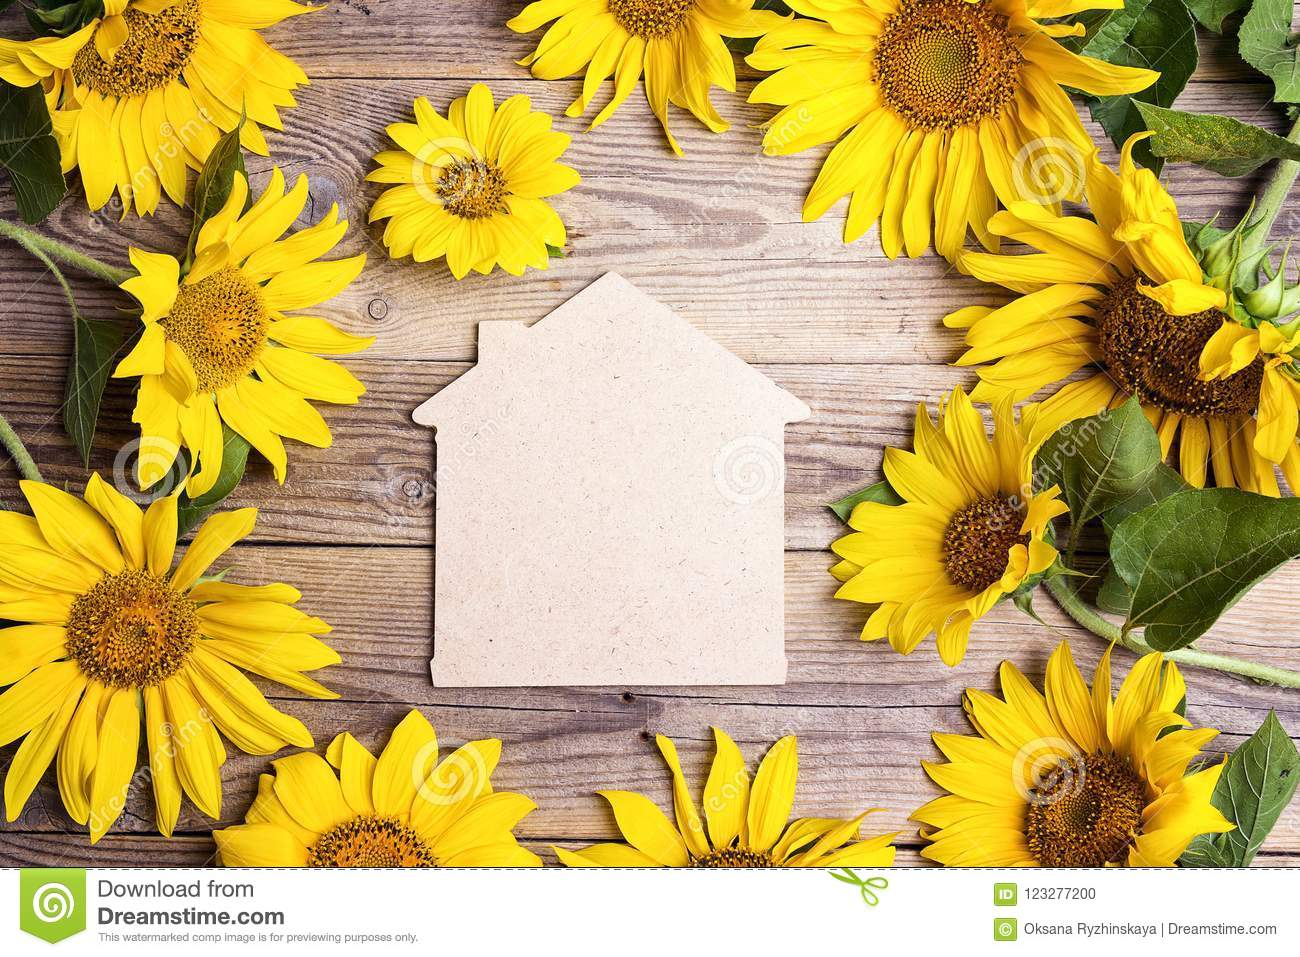 Home Symbol With Yellow Sunflowers On A Old Wooden Backgrounds